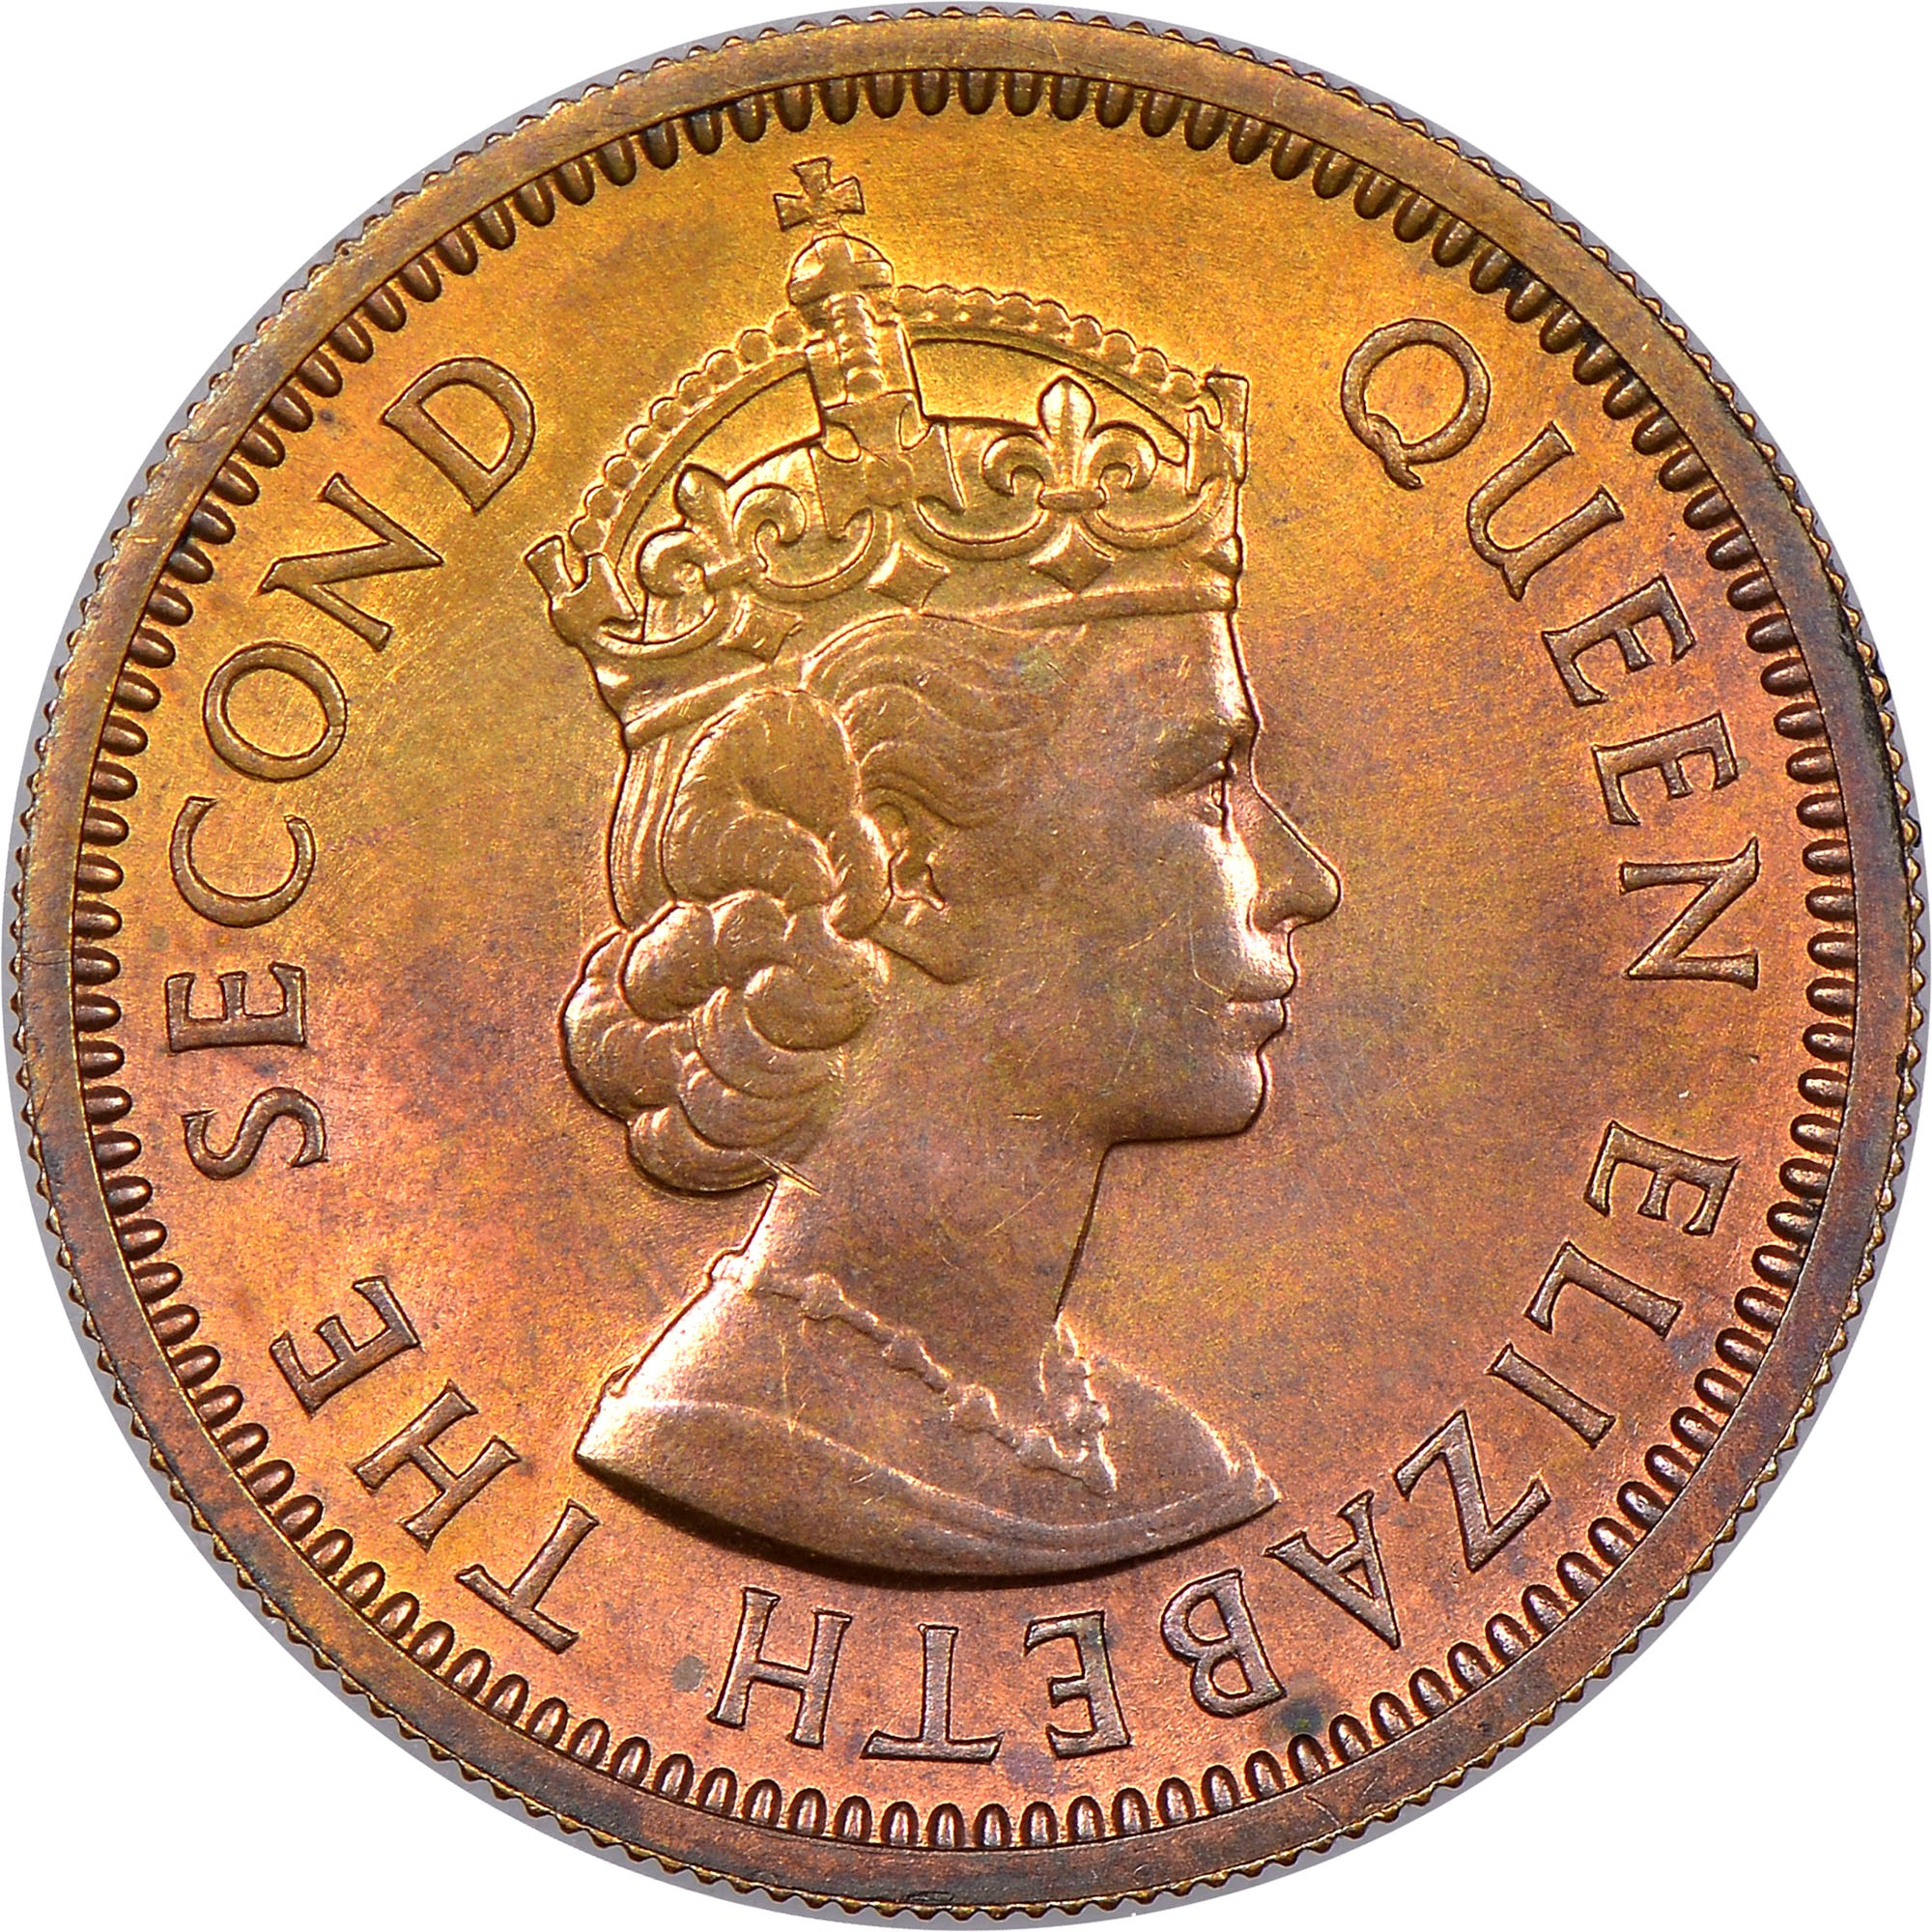 East Caribbean States 5 Cents obverse